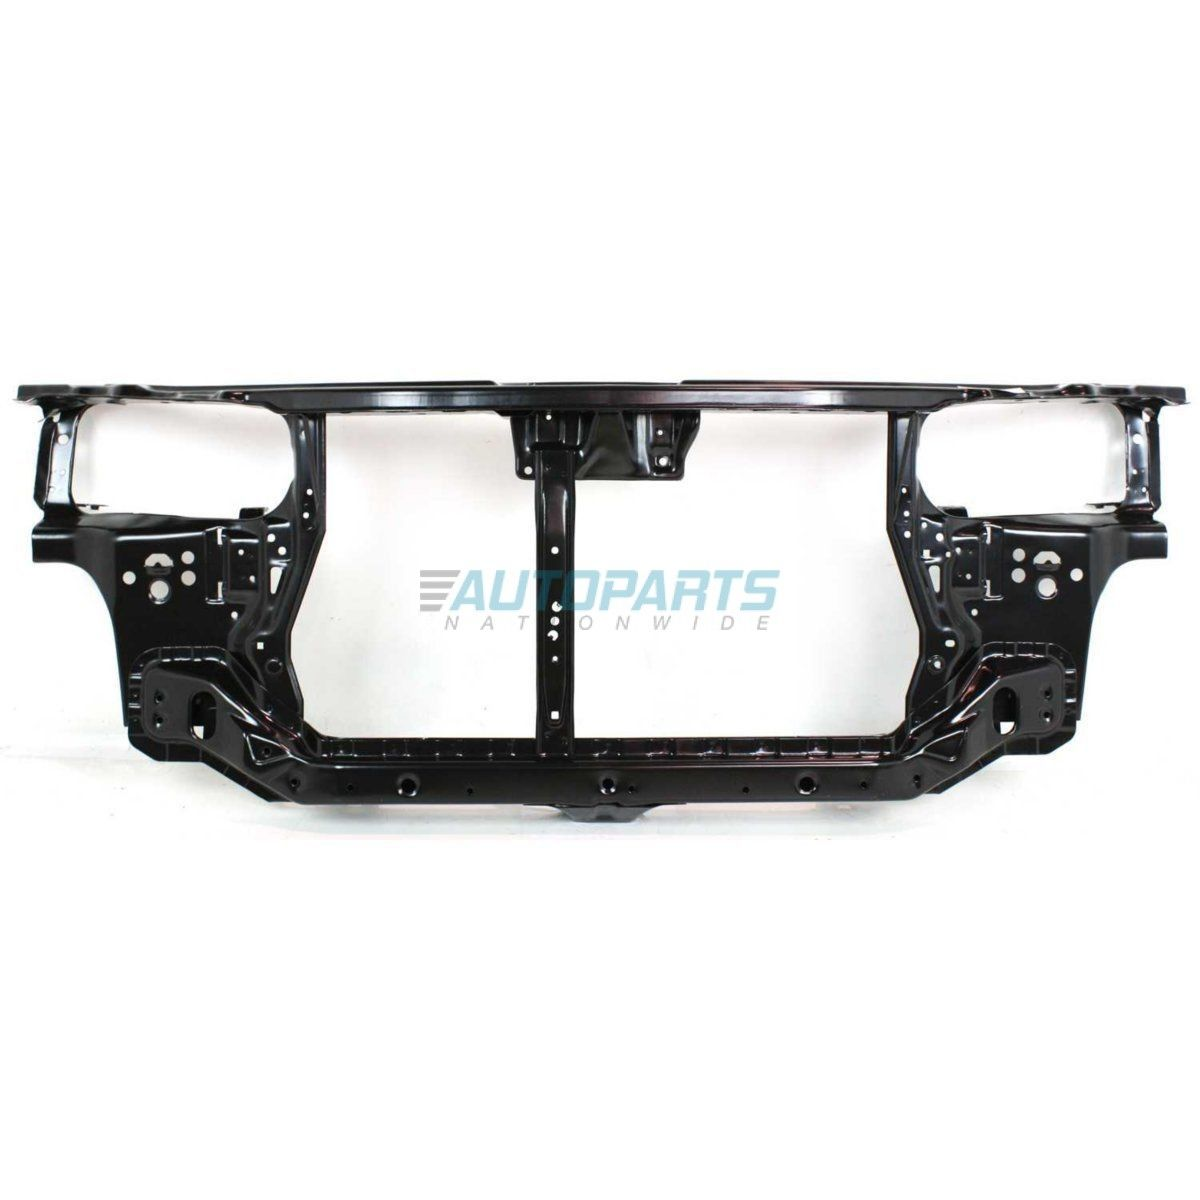 New Radiator Support Assembly Fits 1994-1995 Acura Integra